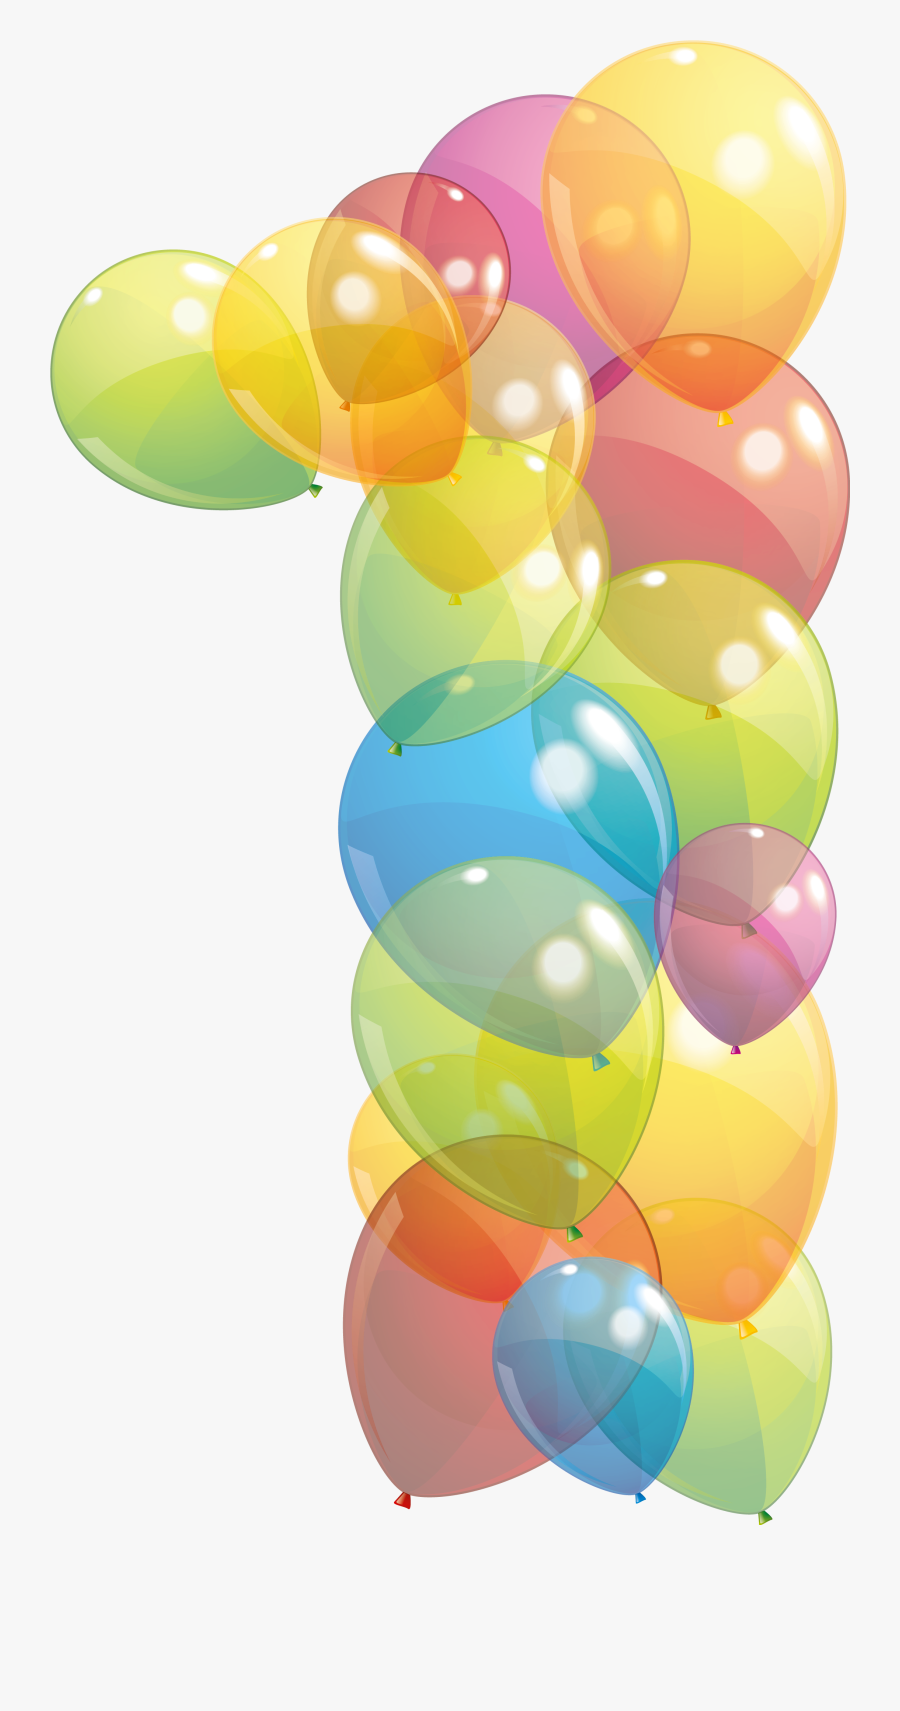 Transparent One Number Of Balloons Png Clipart Image - Number 1 Balloon Clipart, Transparent Clipart